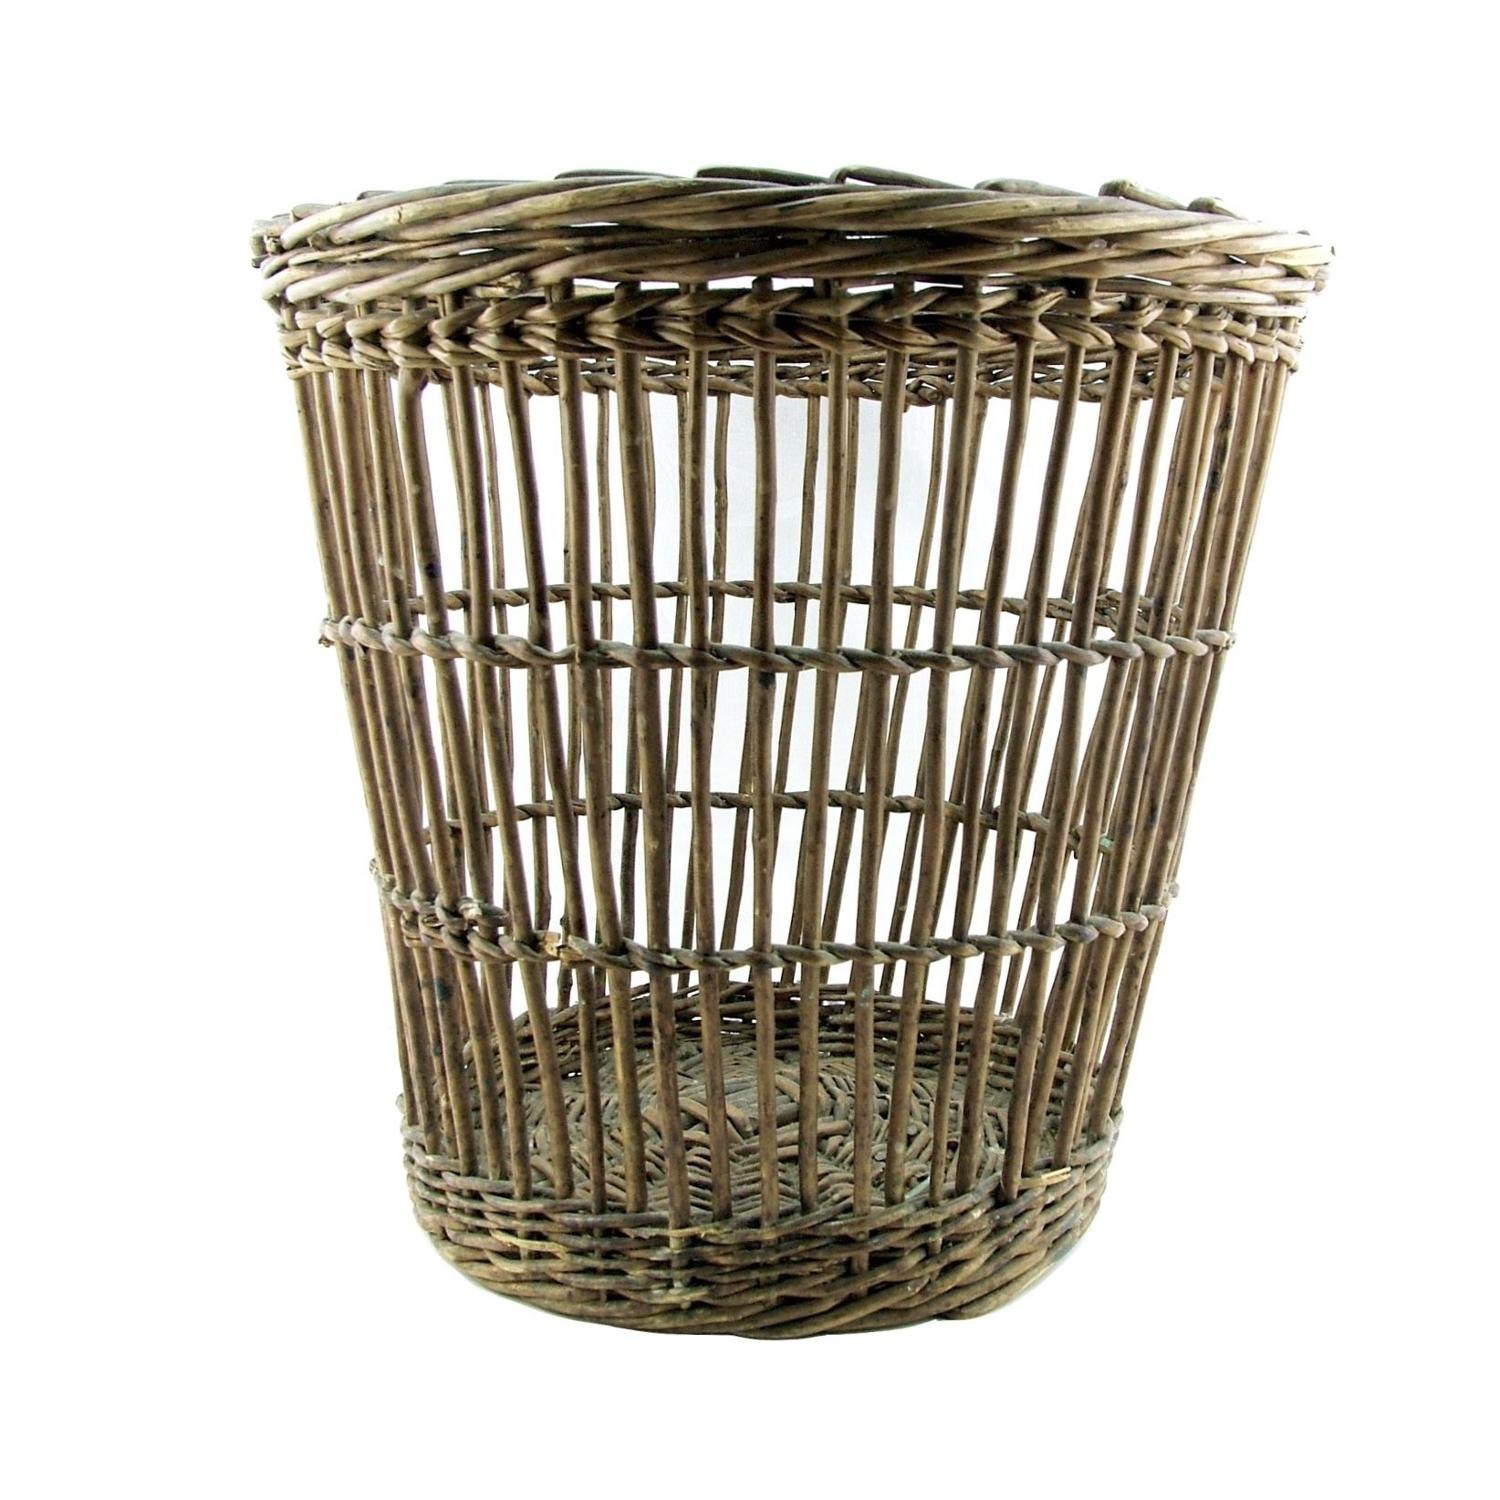 Air Ministry waste paper basket